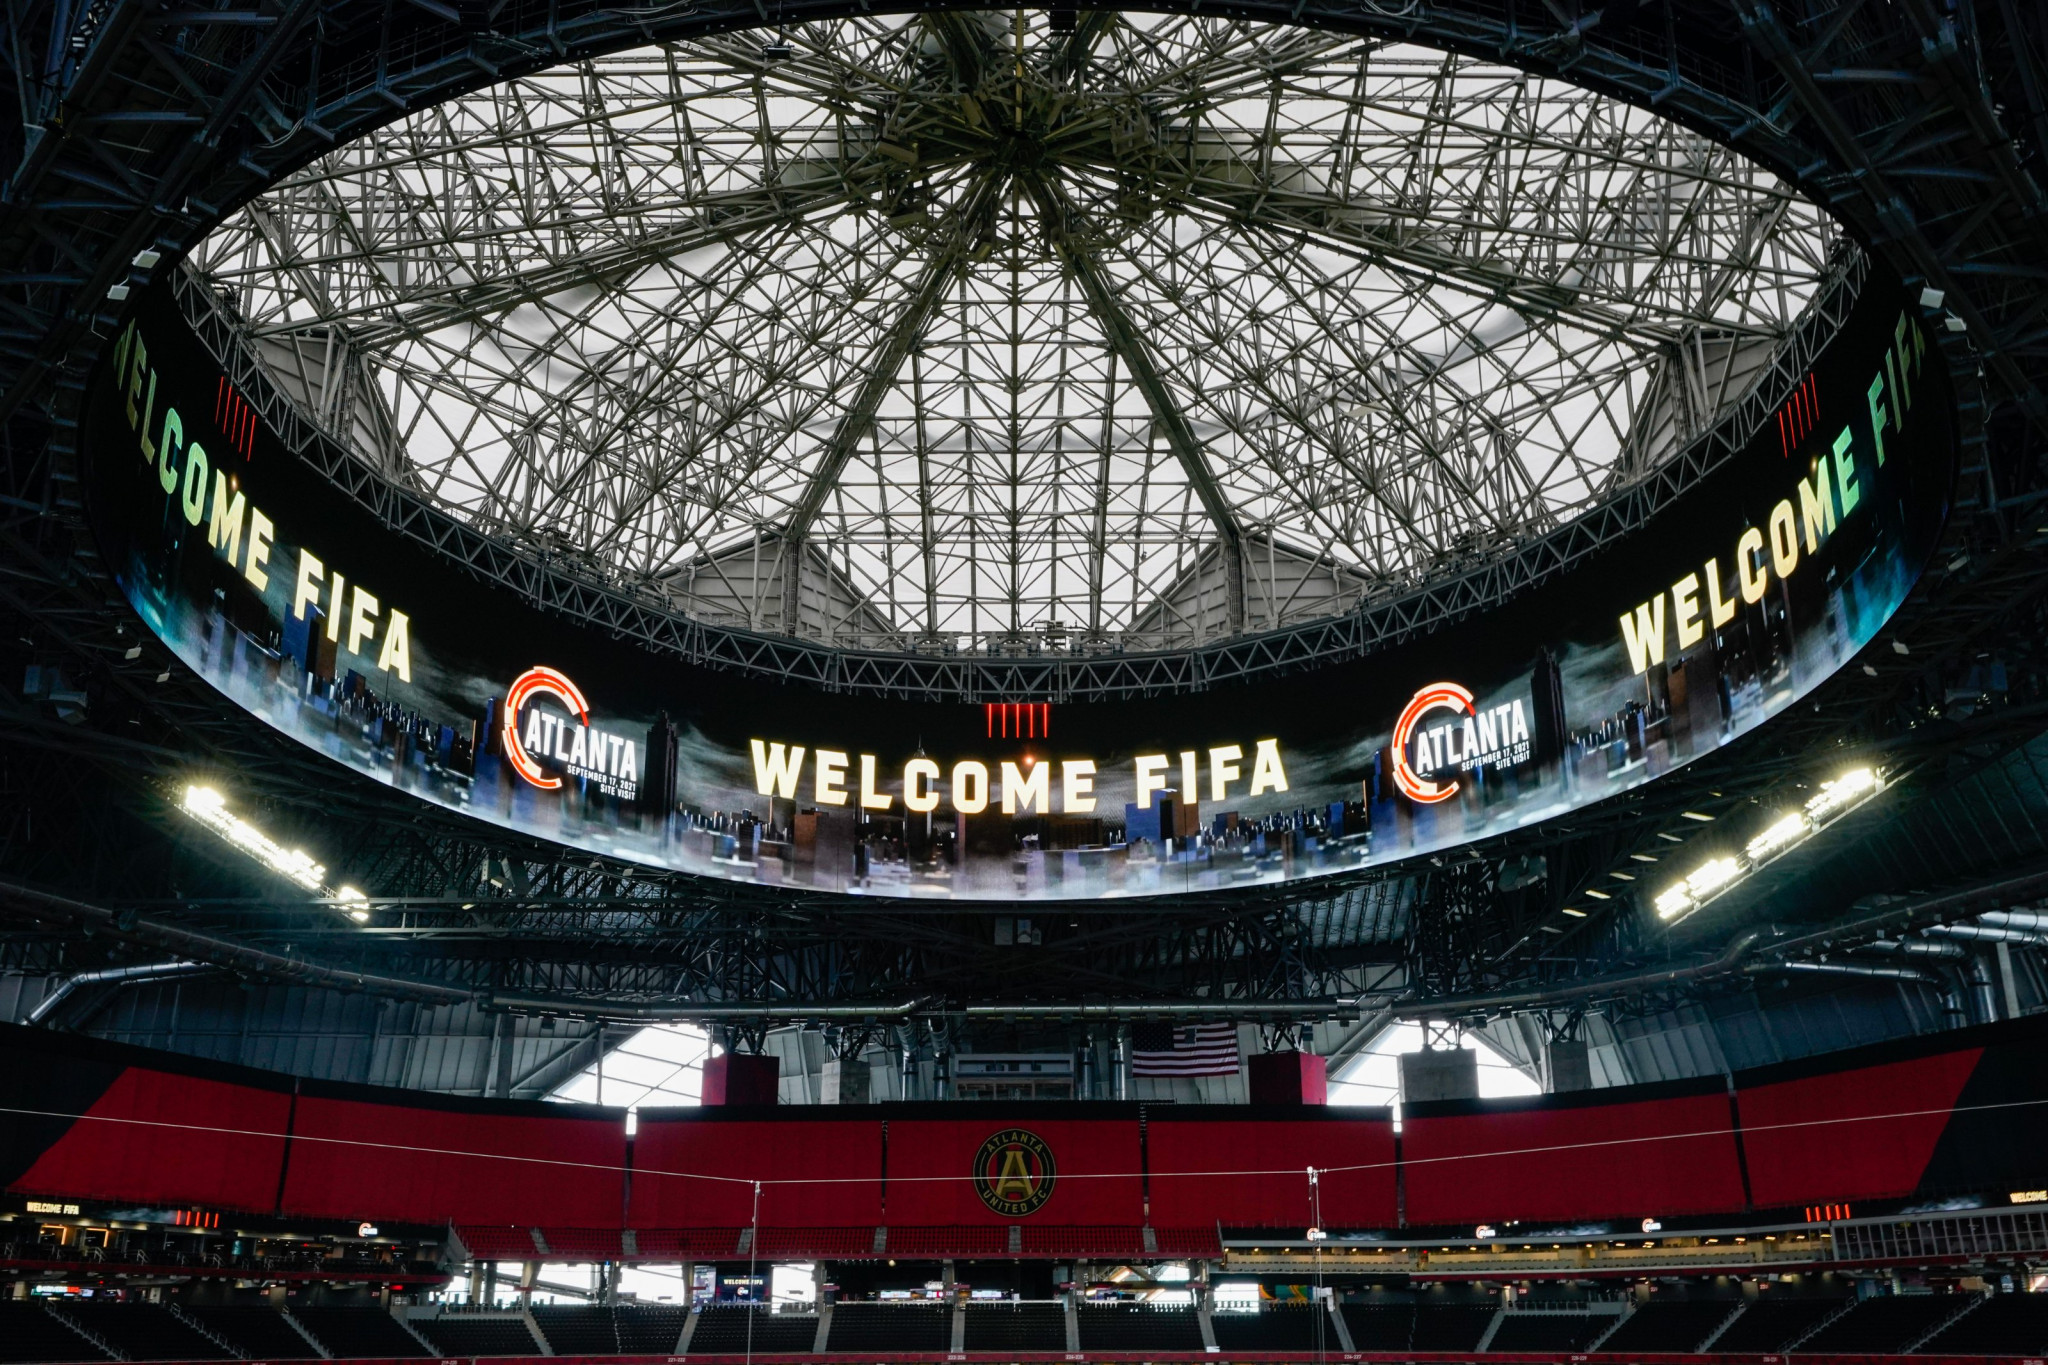 FIFA completes first round of US venue inspections for 2026 FIFA World Cup